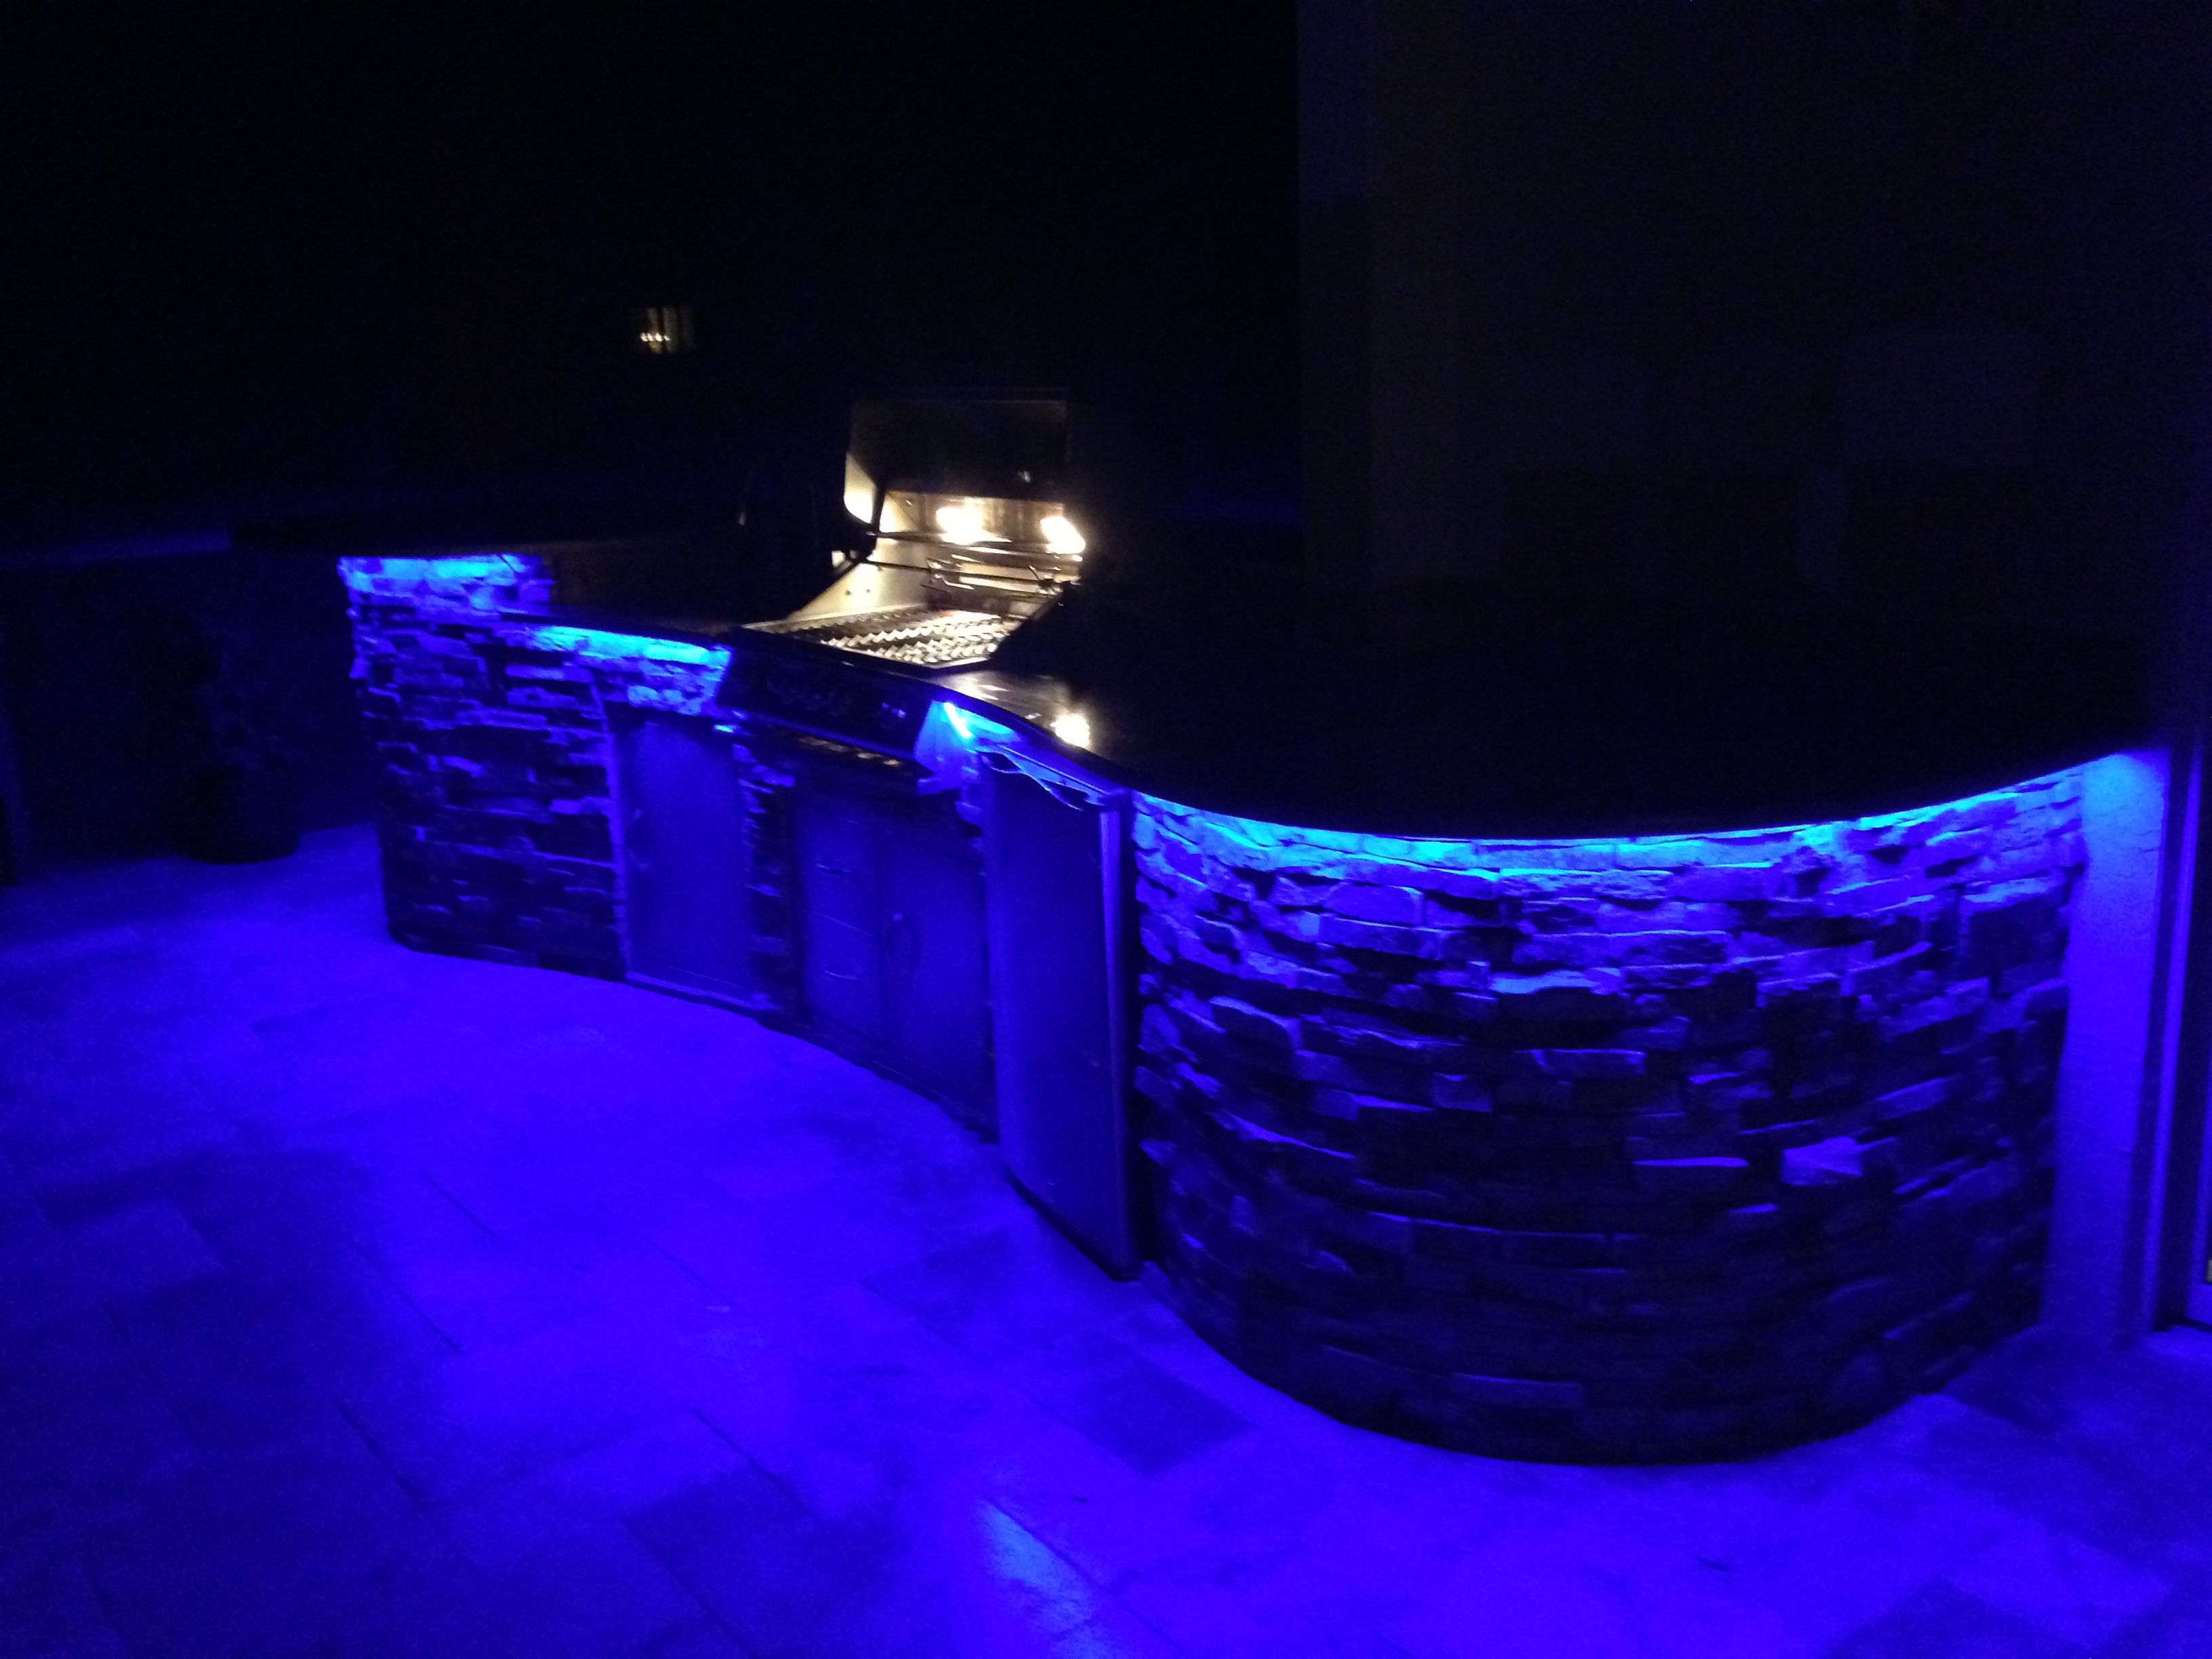 led accent lighting under bar top in